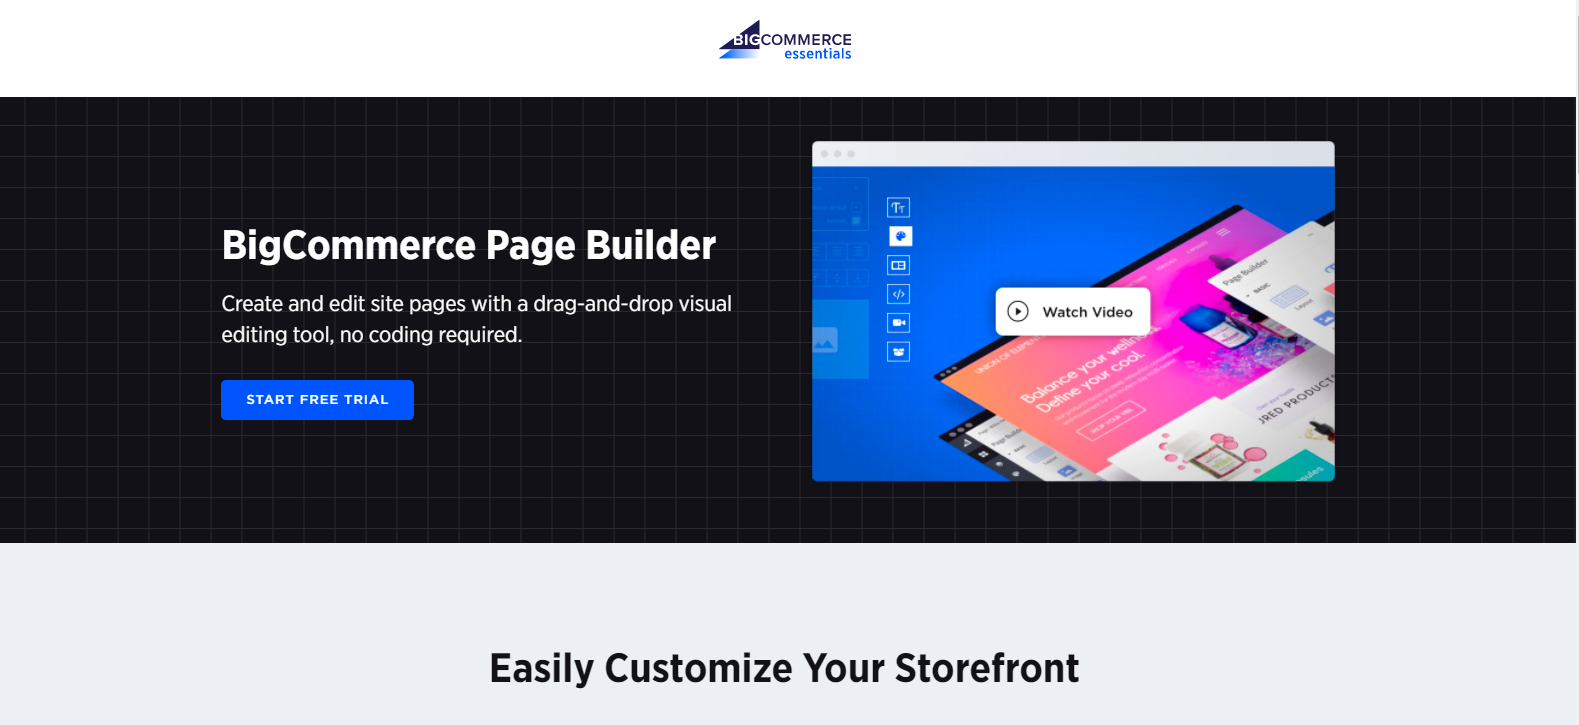 BigCommerce's New Page Builder Tool